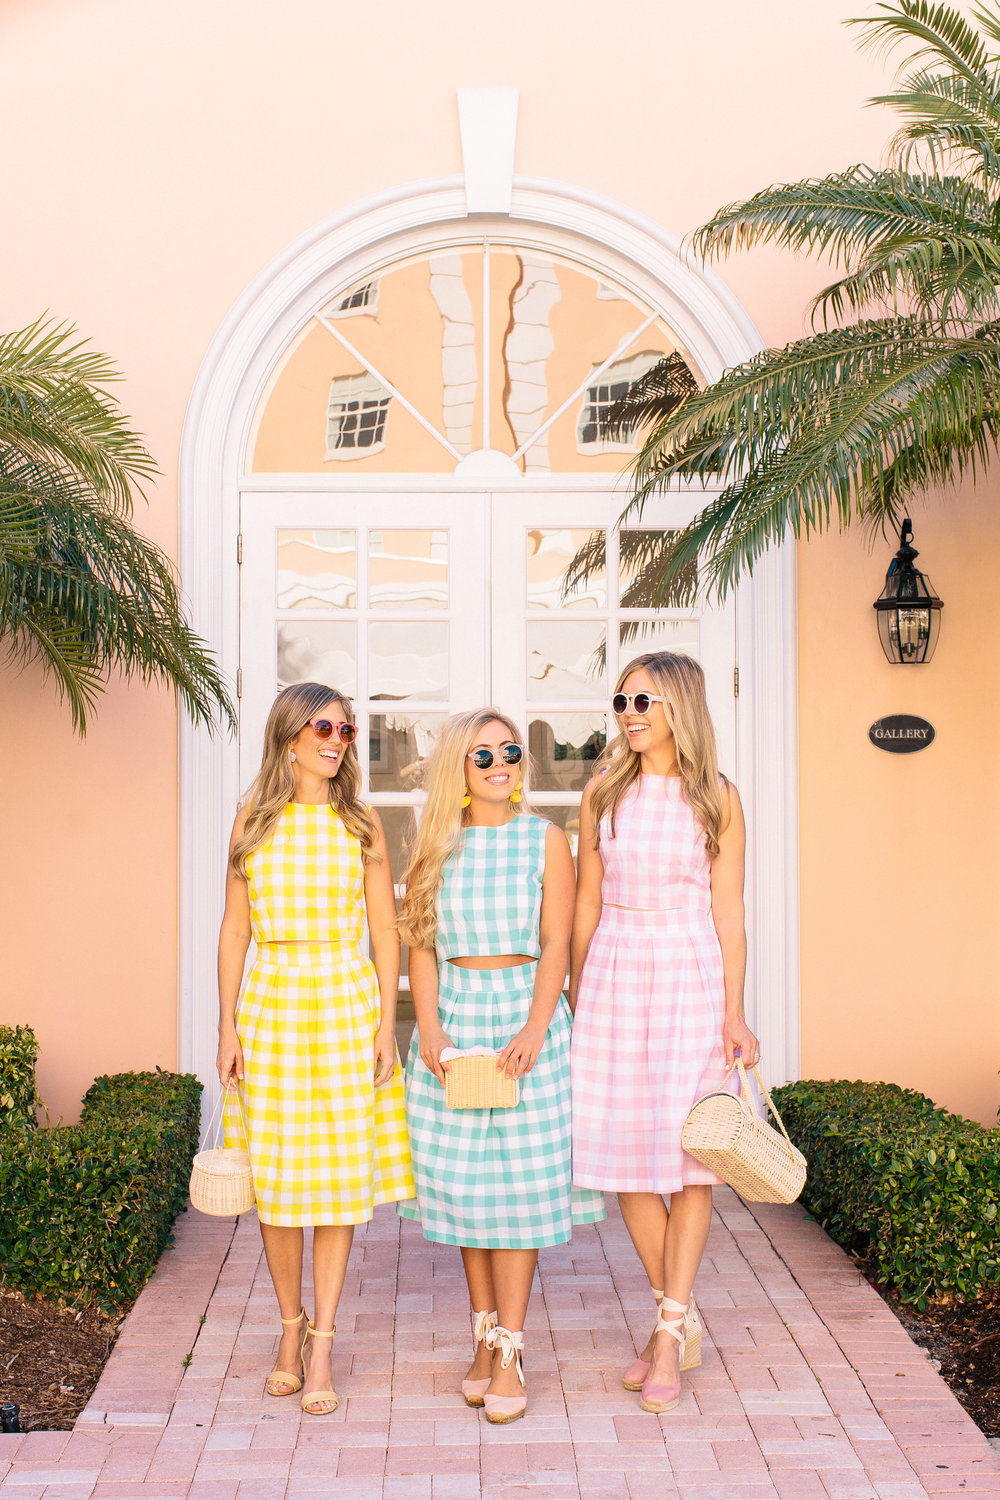 - Palm Beach Lately and Elizabeth Wilson Designs have combined our sunny lifestyle and southern charm to bring you the PBL x EWD